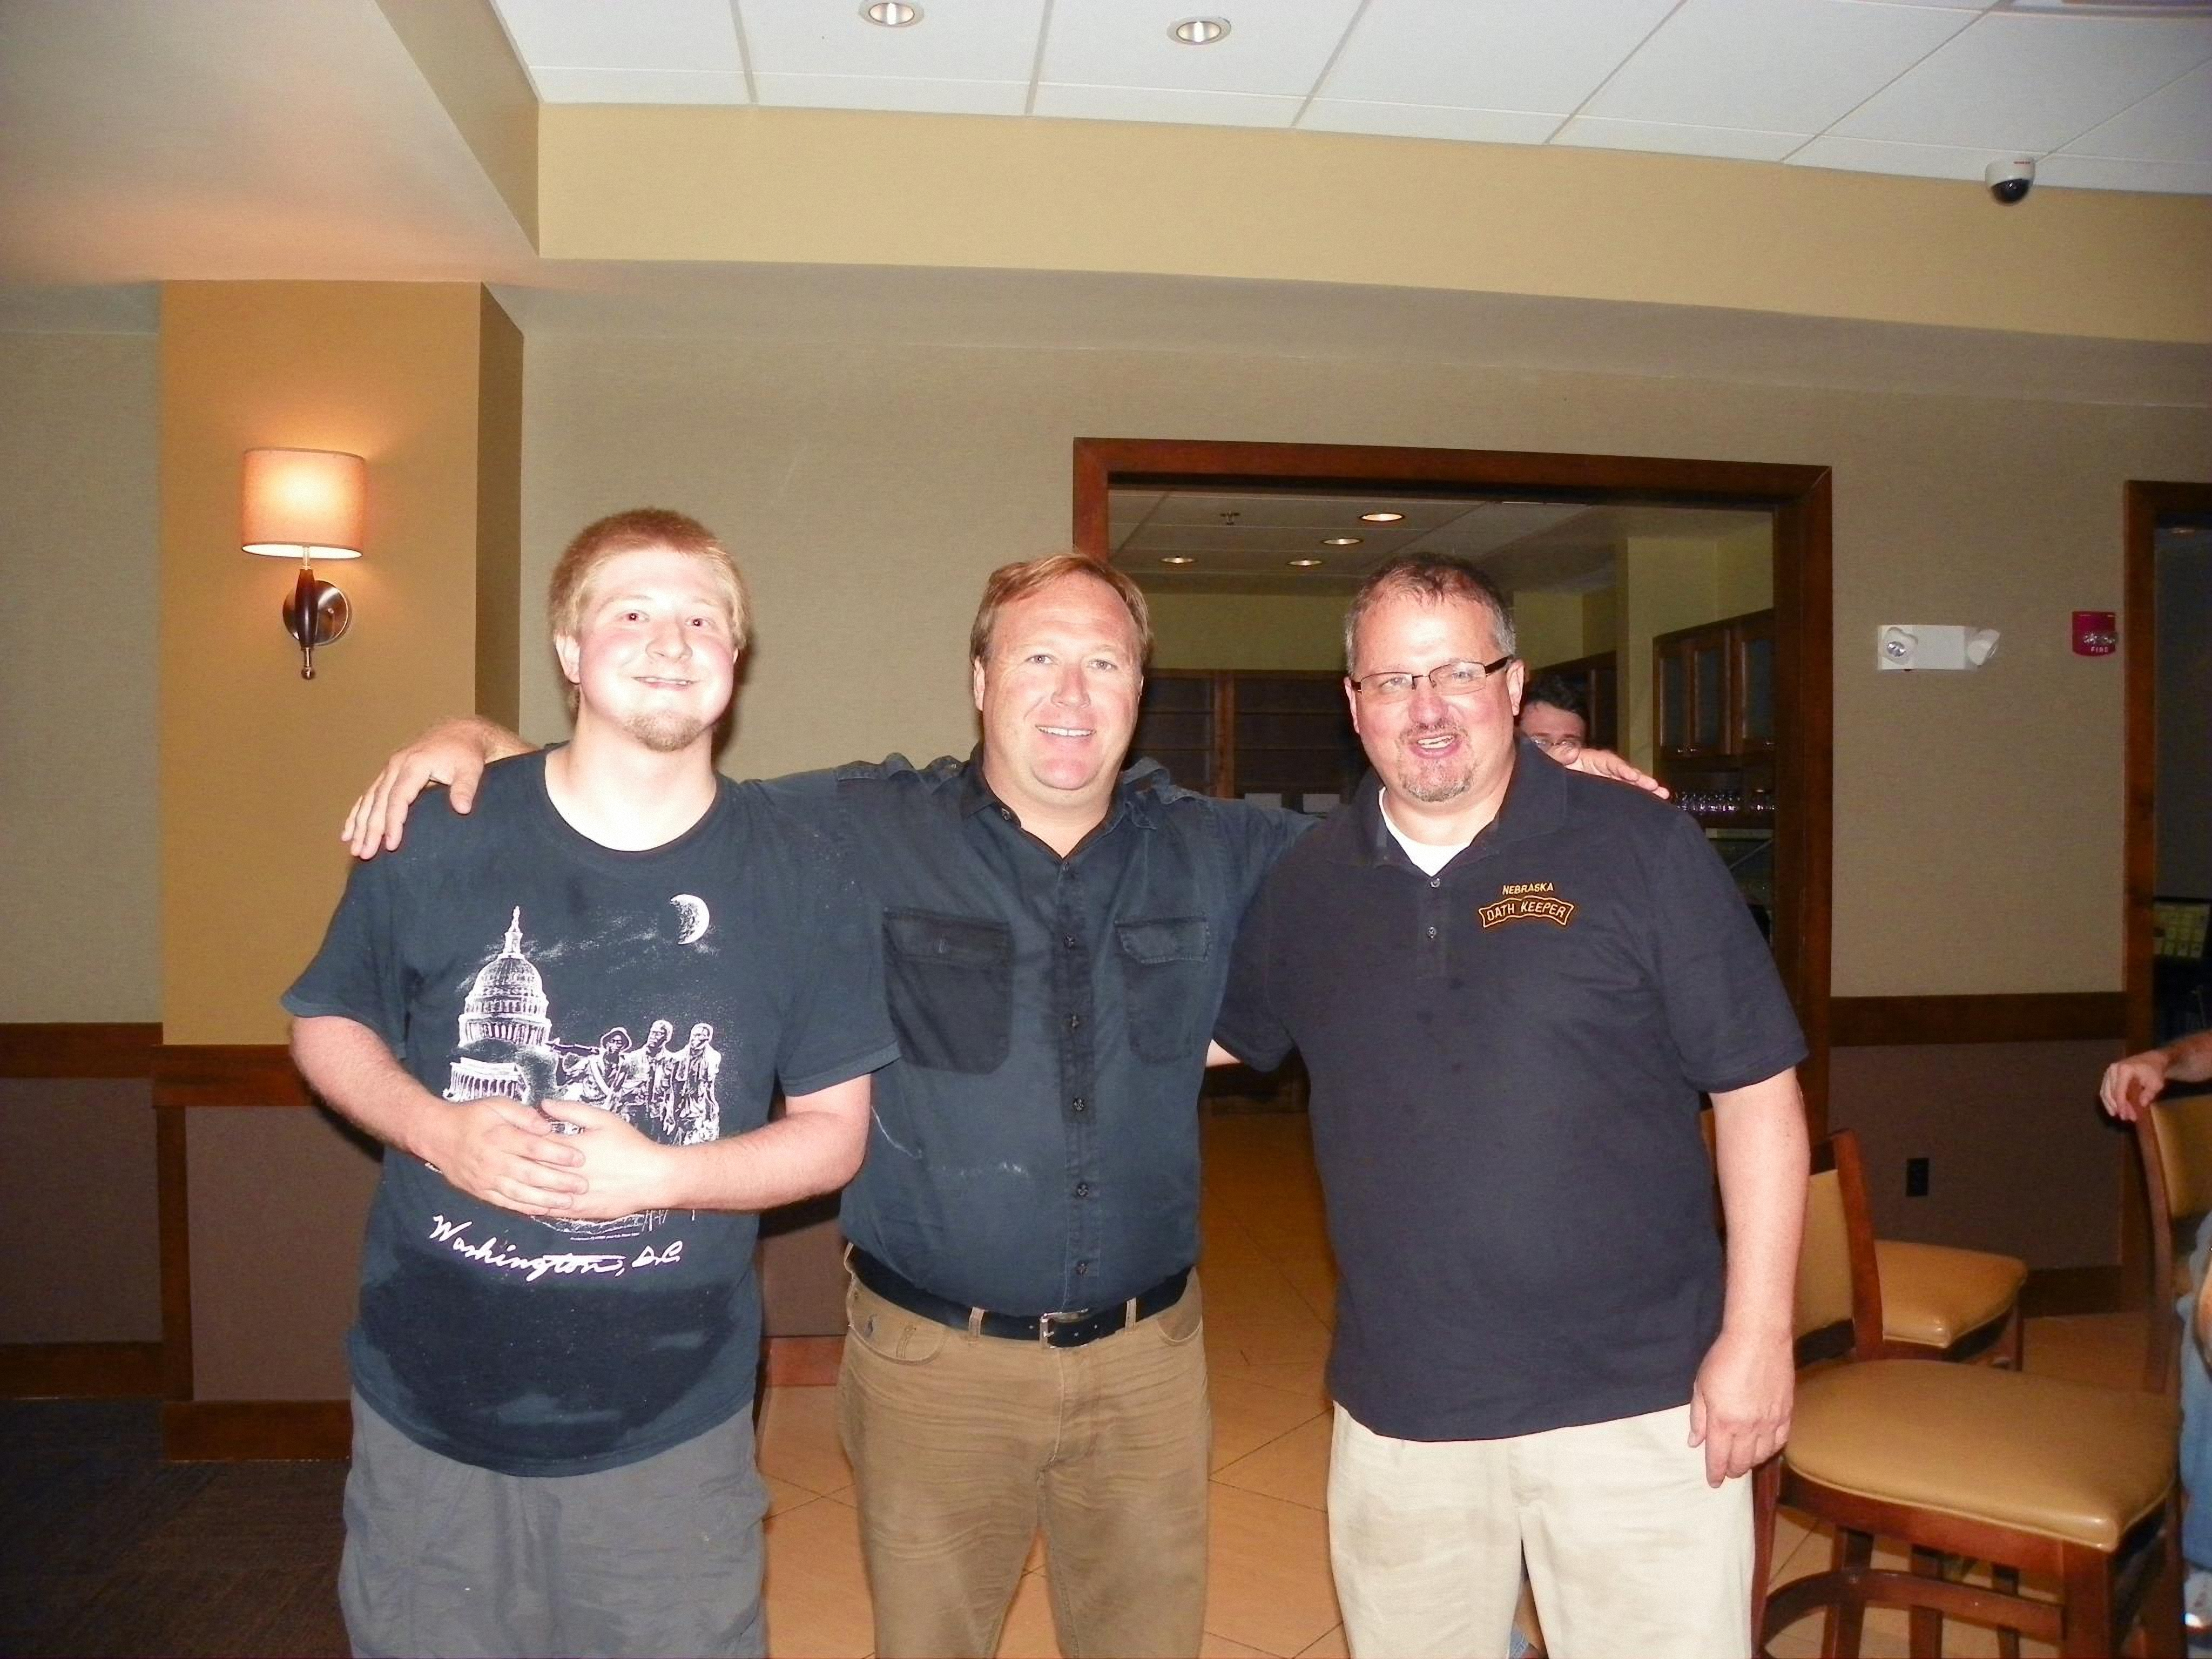 10-USWGO-Founder-Brian-D.-Hill-with-Infowars-founder-Alex-Jones-and-Oath-Keepers-founder-Stewart-Rhodes.jpg